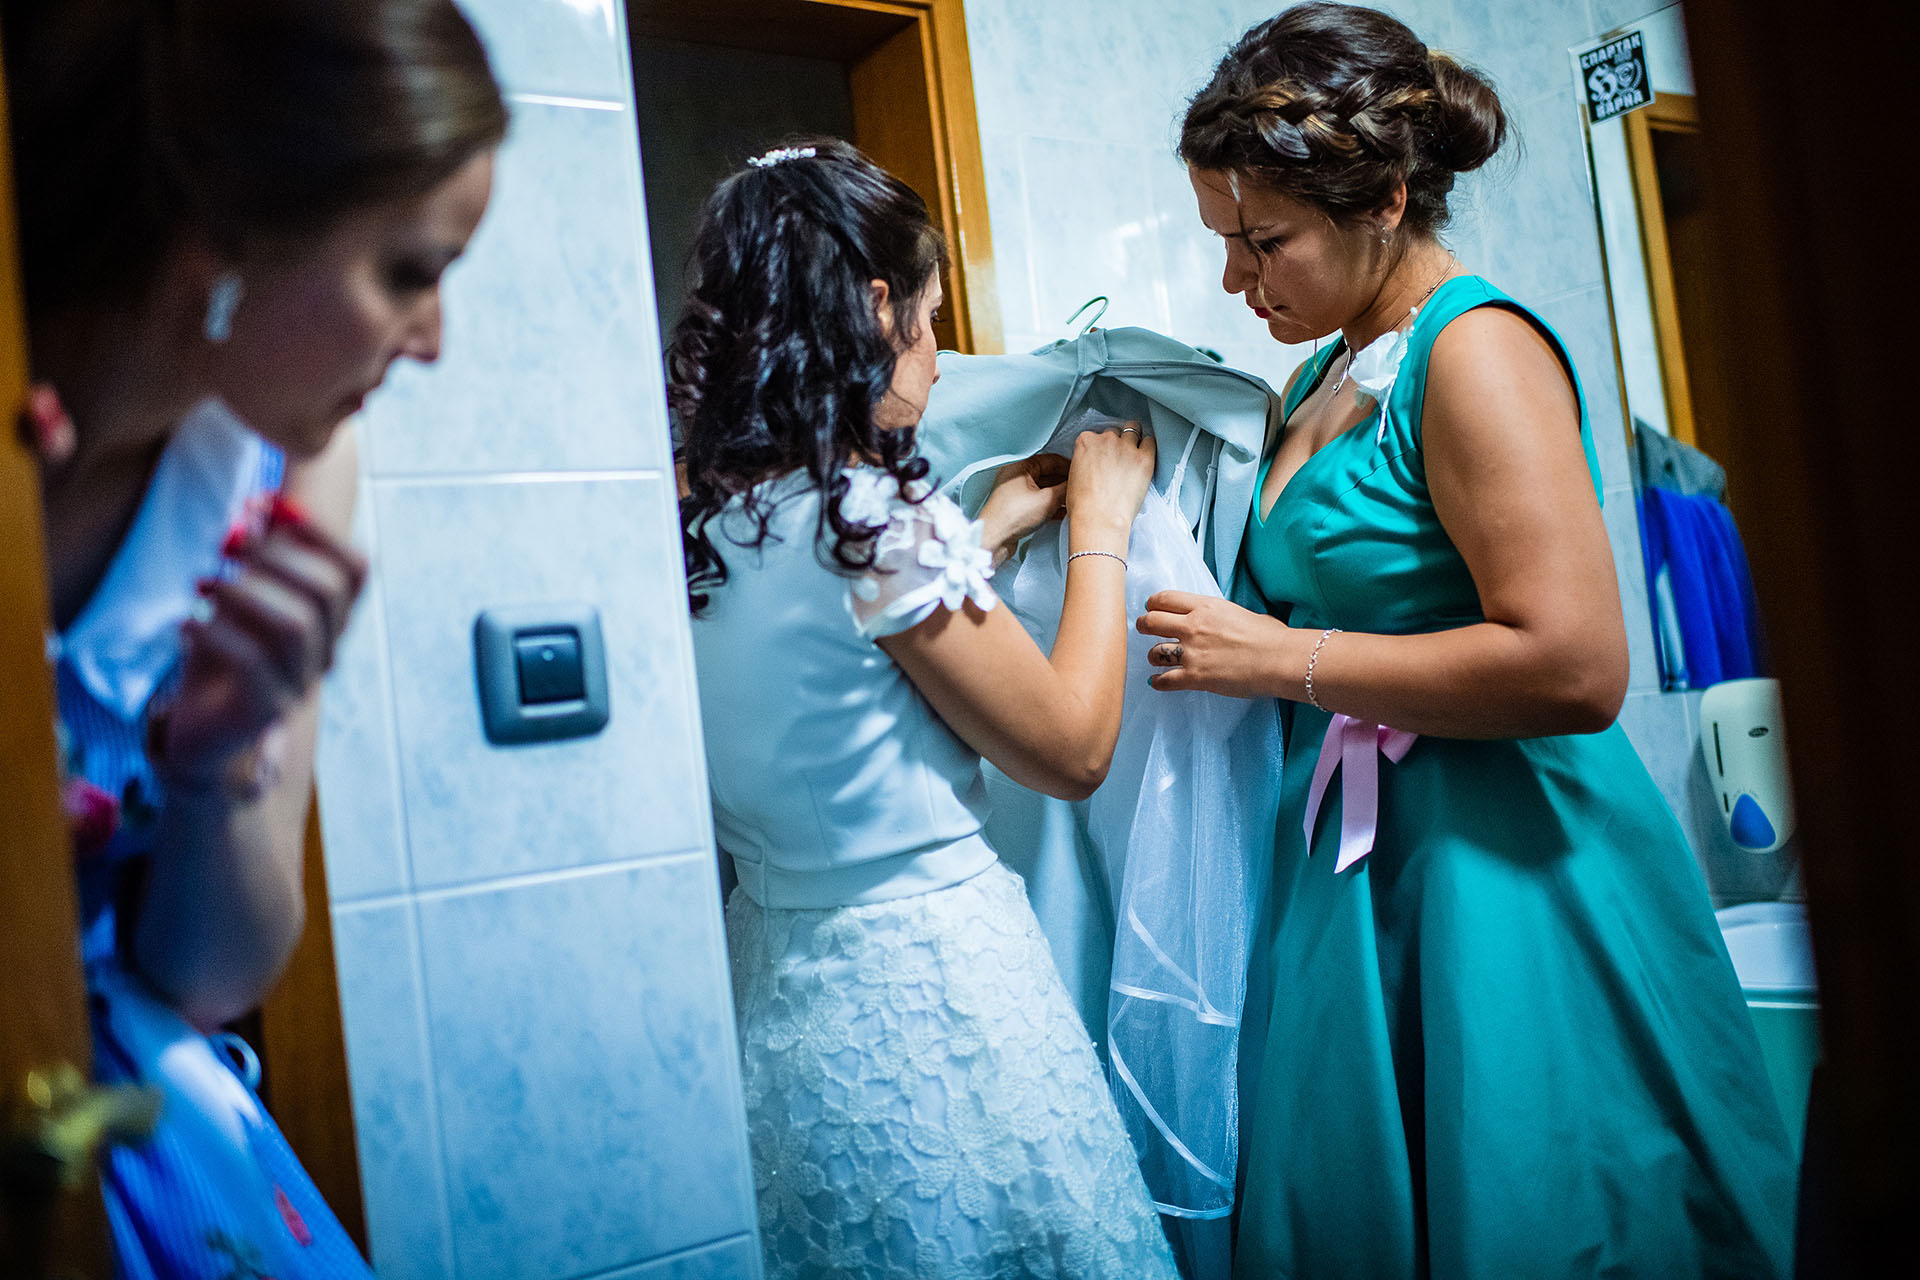 Bulgaria Elopement Post-Ceremony Bride Image | After the first ceremony, the bridesmaids help the bride change into her second wedding gown